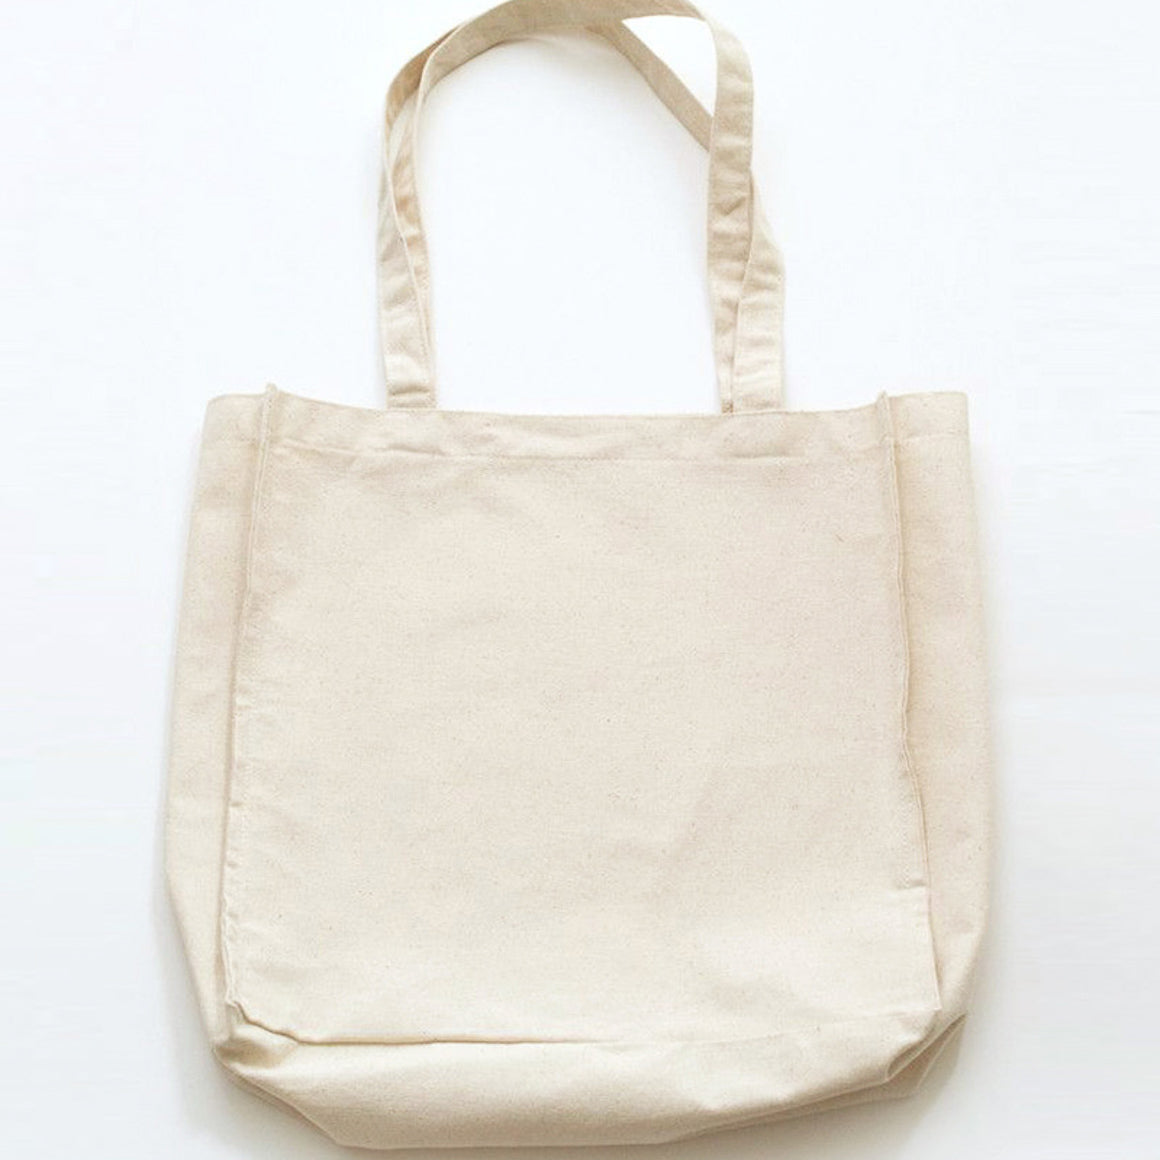 Canvas Tote Bag - Cream Color